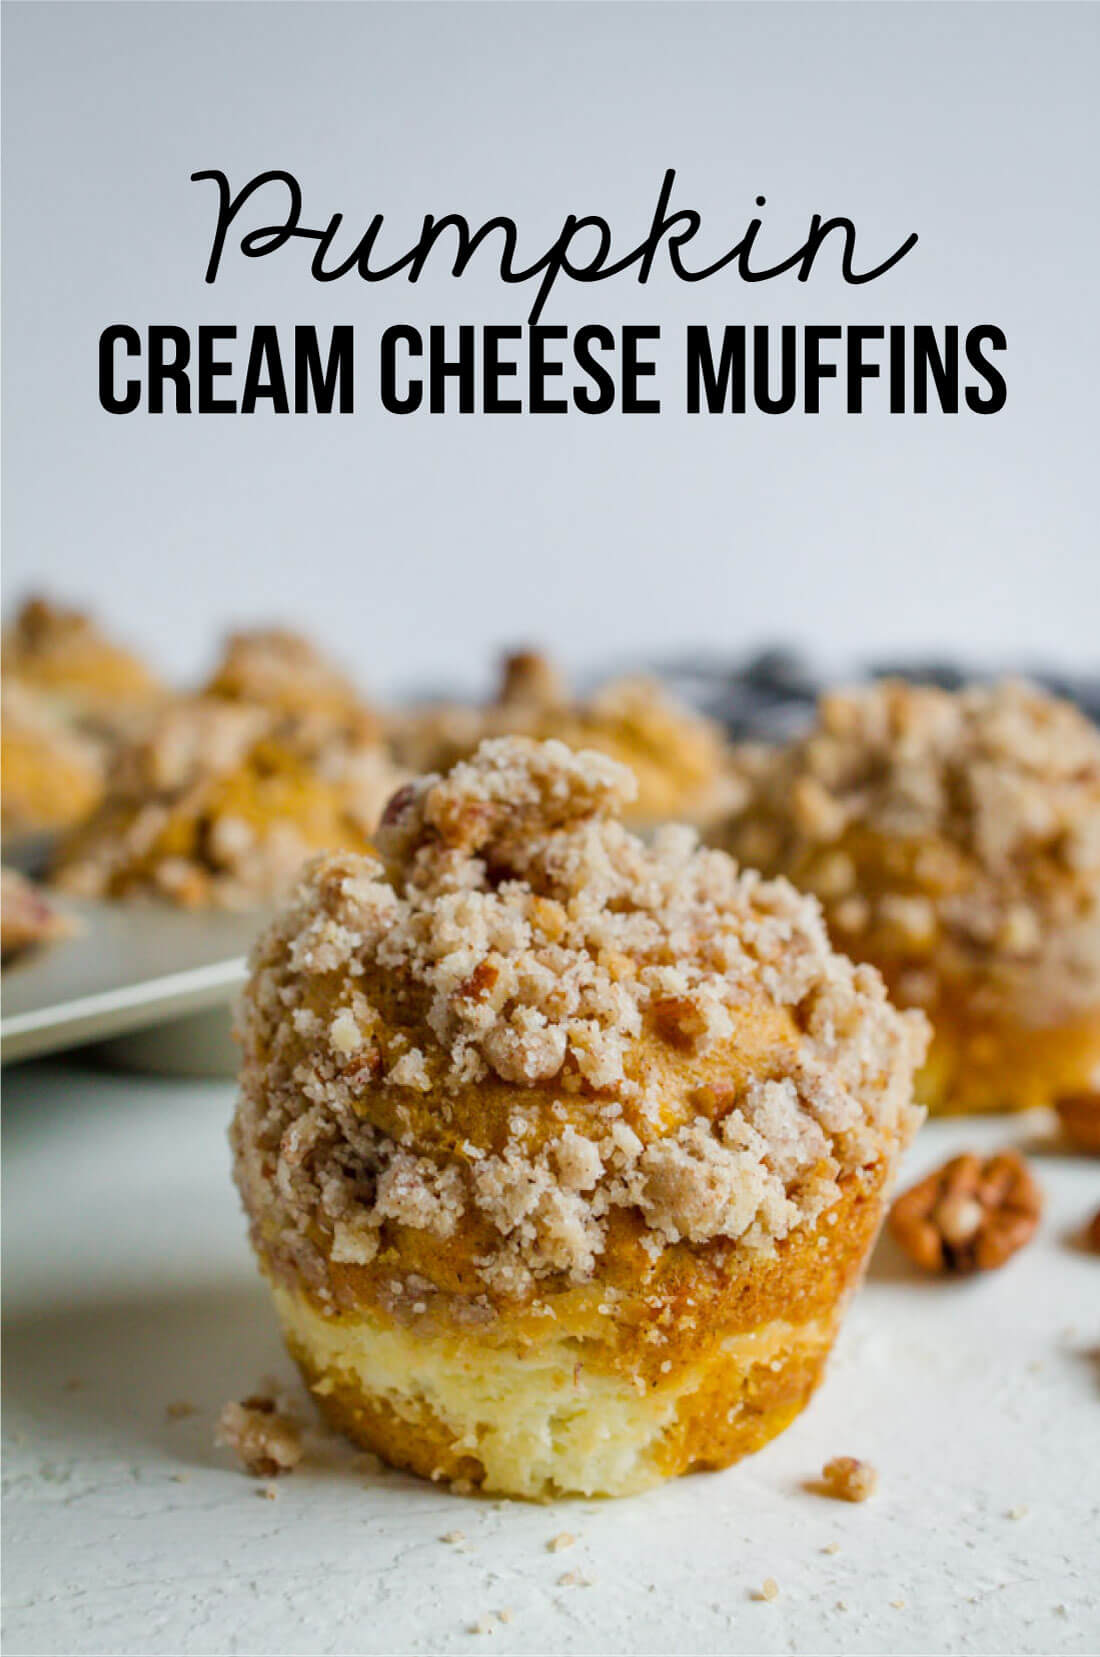 Pumpkin Cream Cheese Muffins- the perfect fall treat from www.thirtyhandmadedays.com